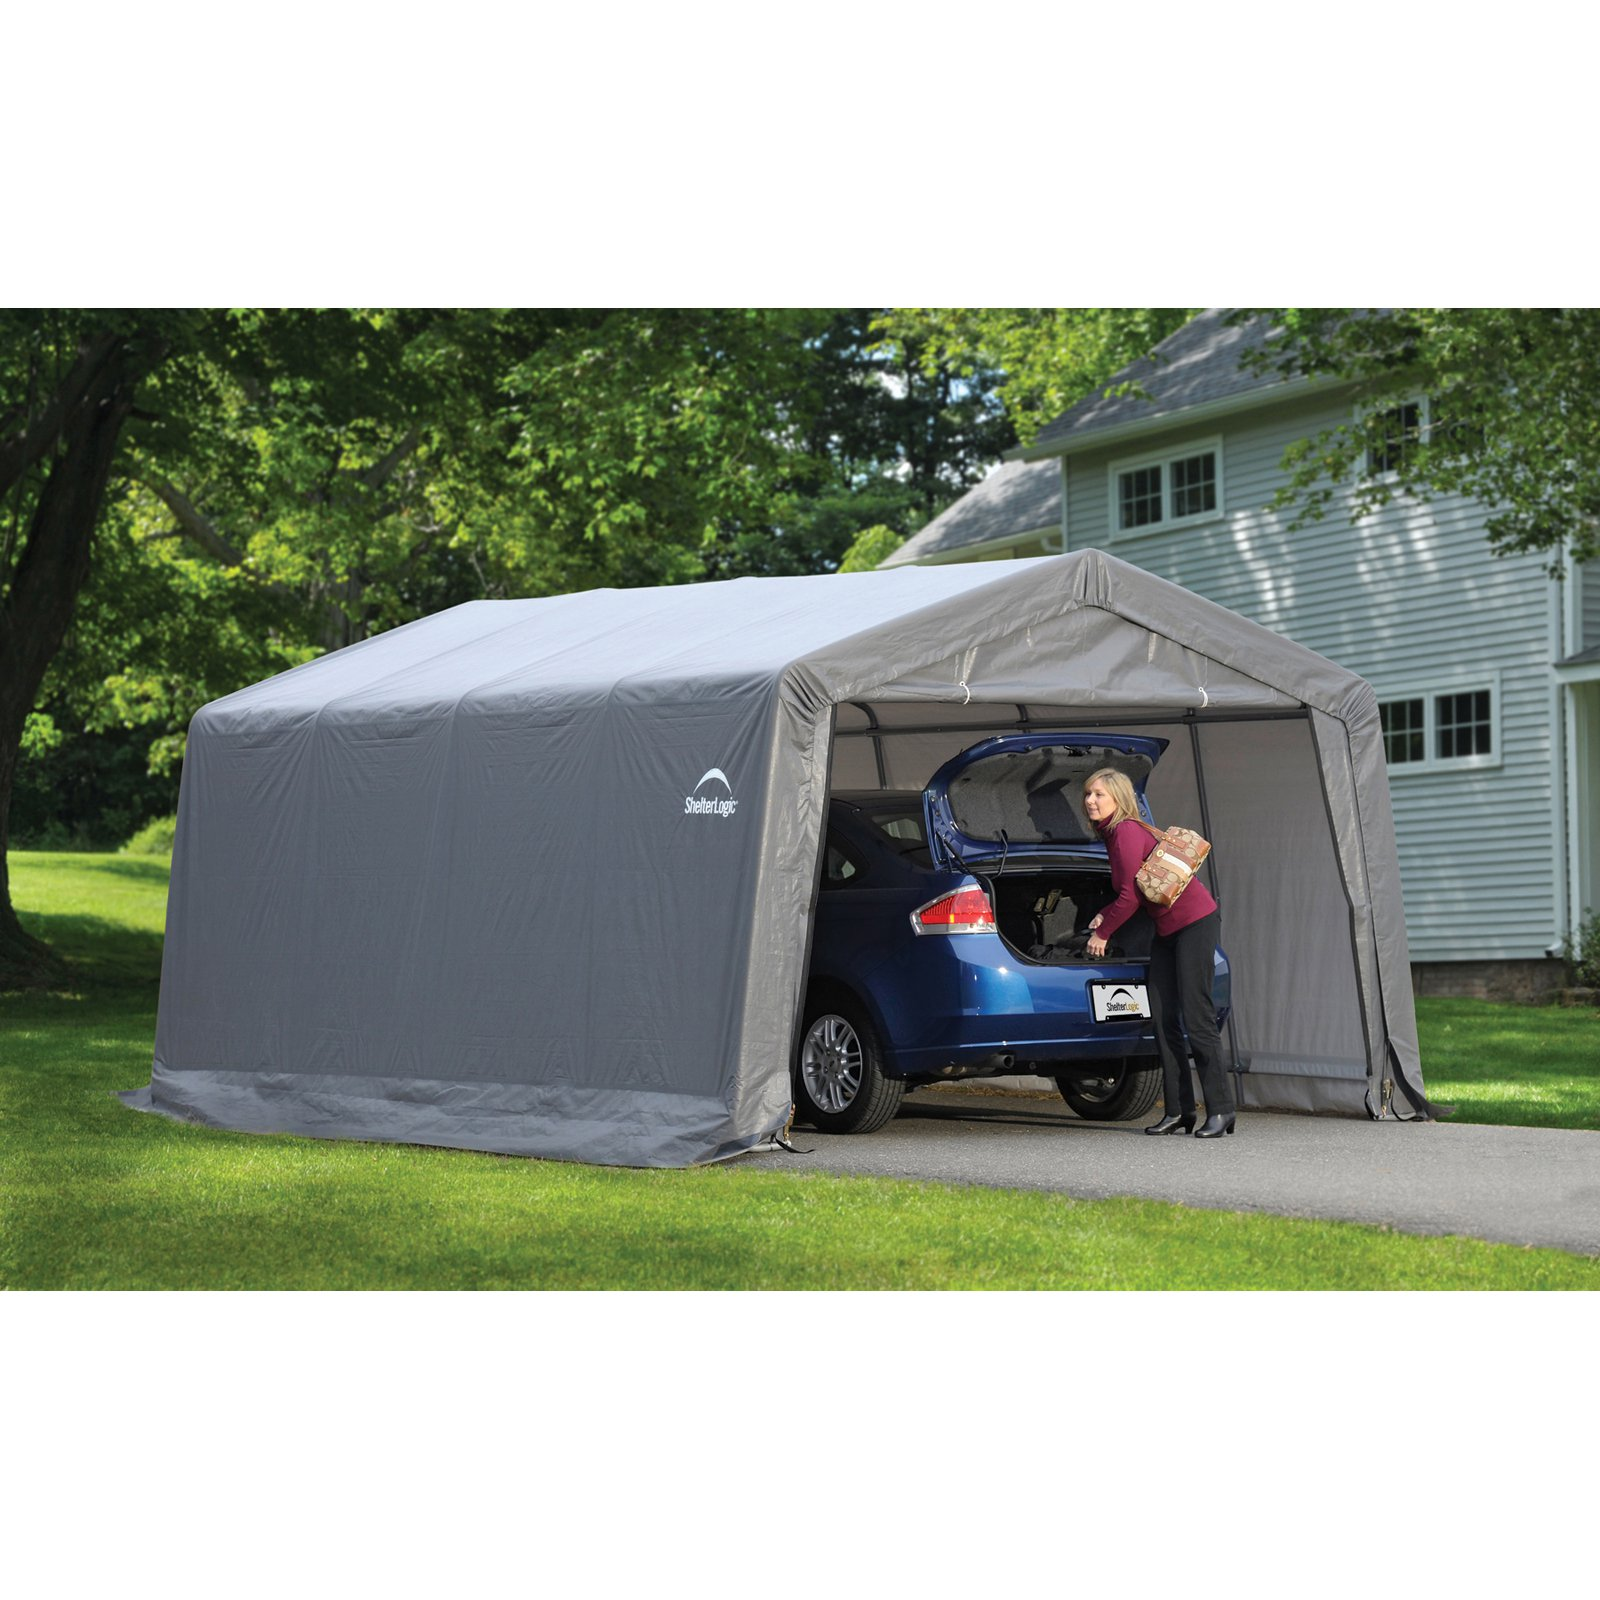 in avec best box carport garage shelterlogic top a idees tarps autoshelter with shelters ideas designs et round canopies of also